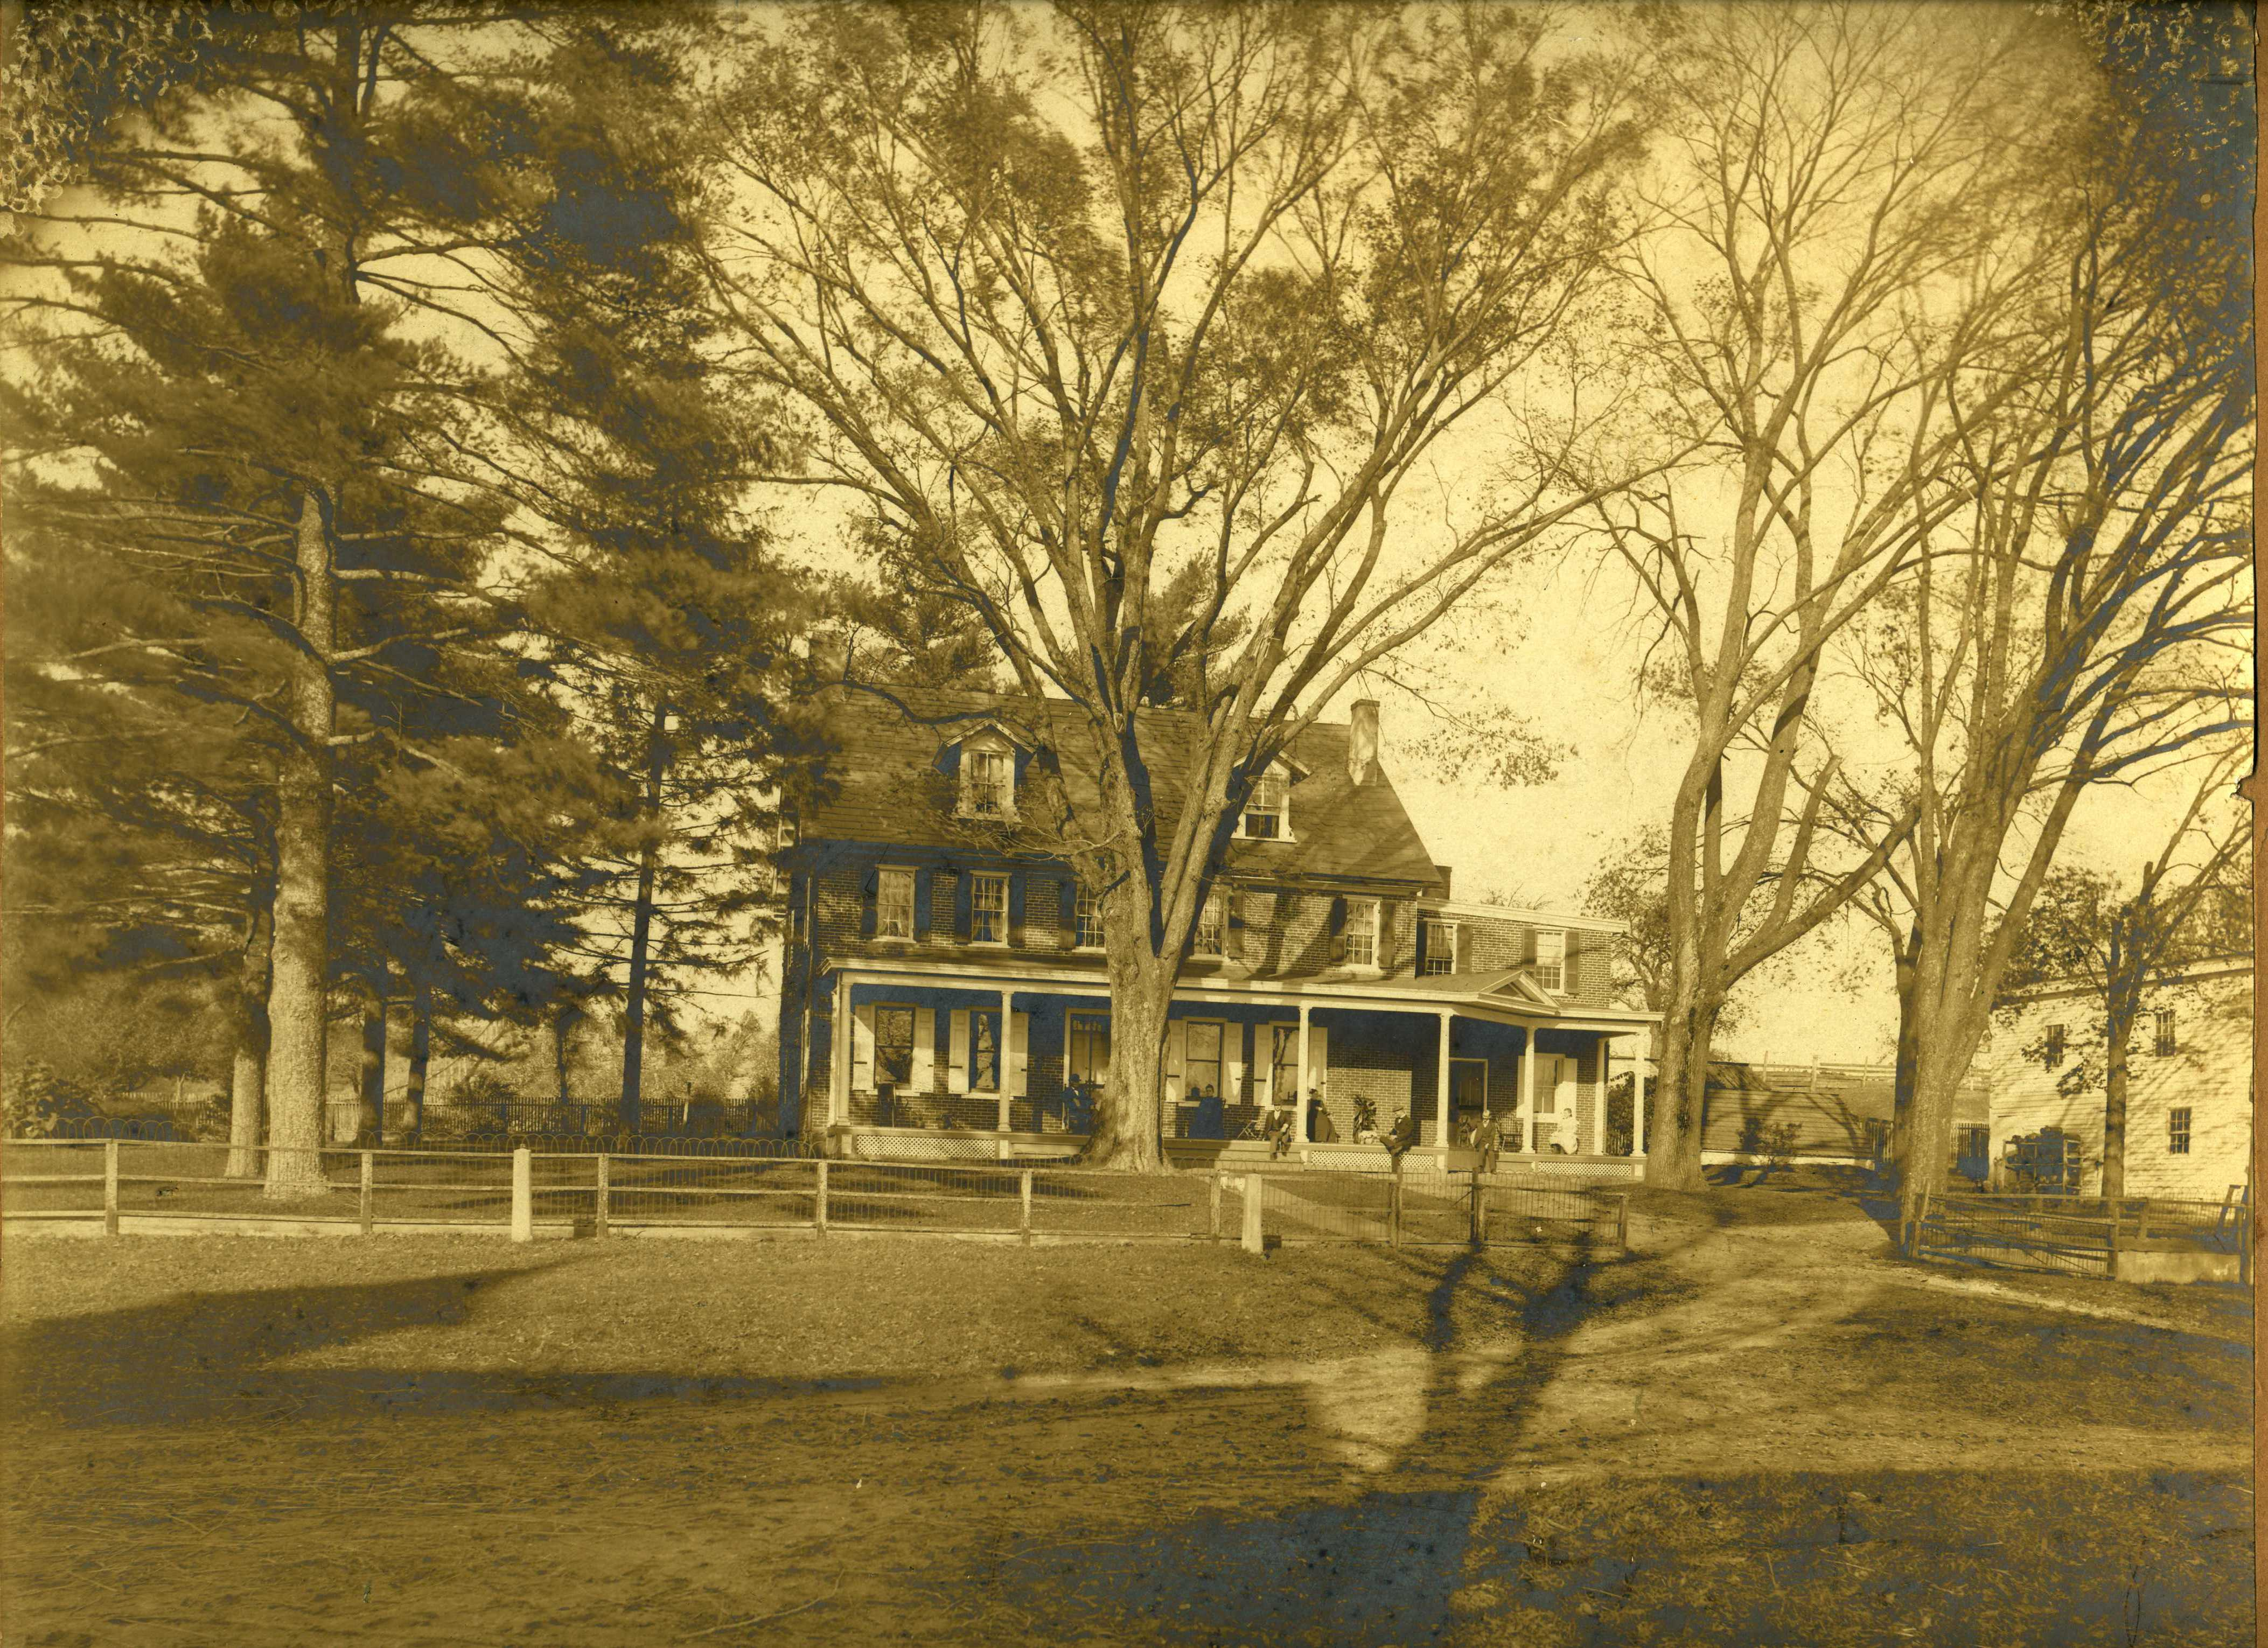 Photograph of building with trees in front. Building has large porch.